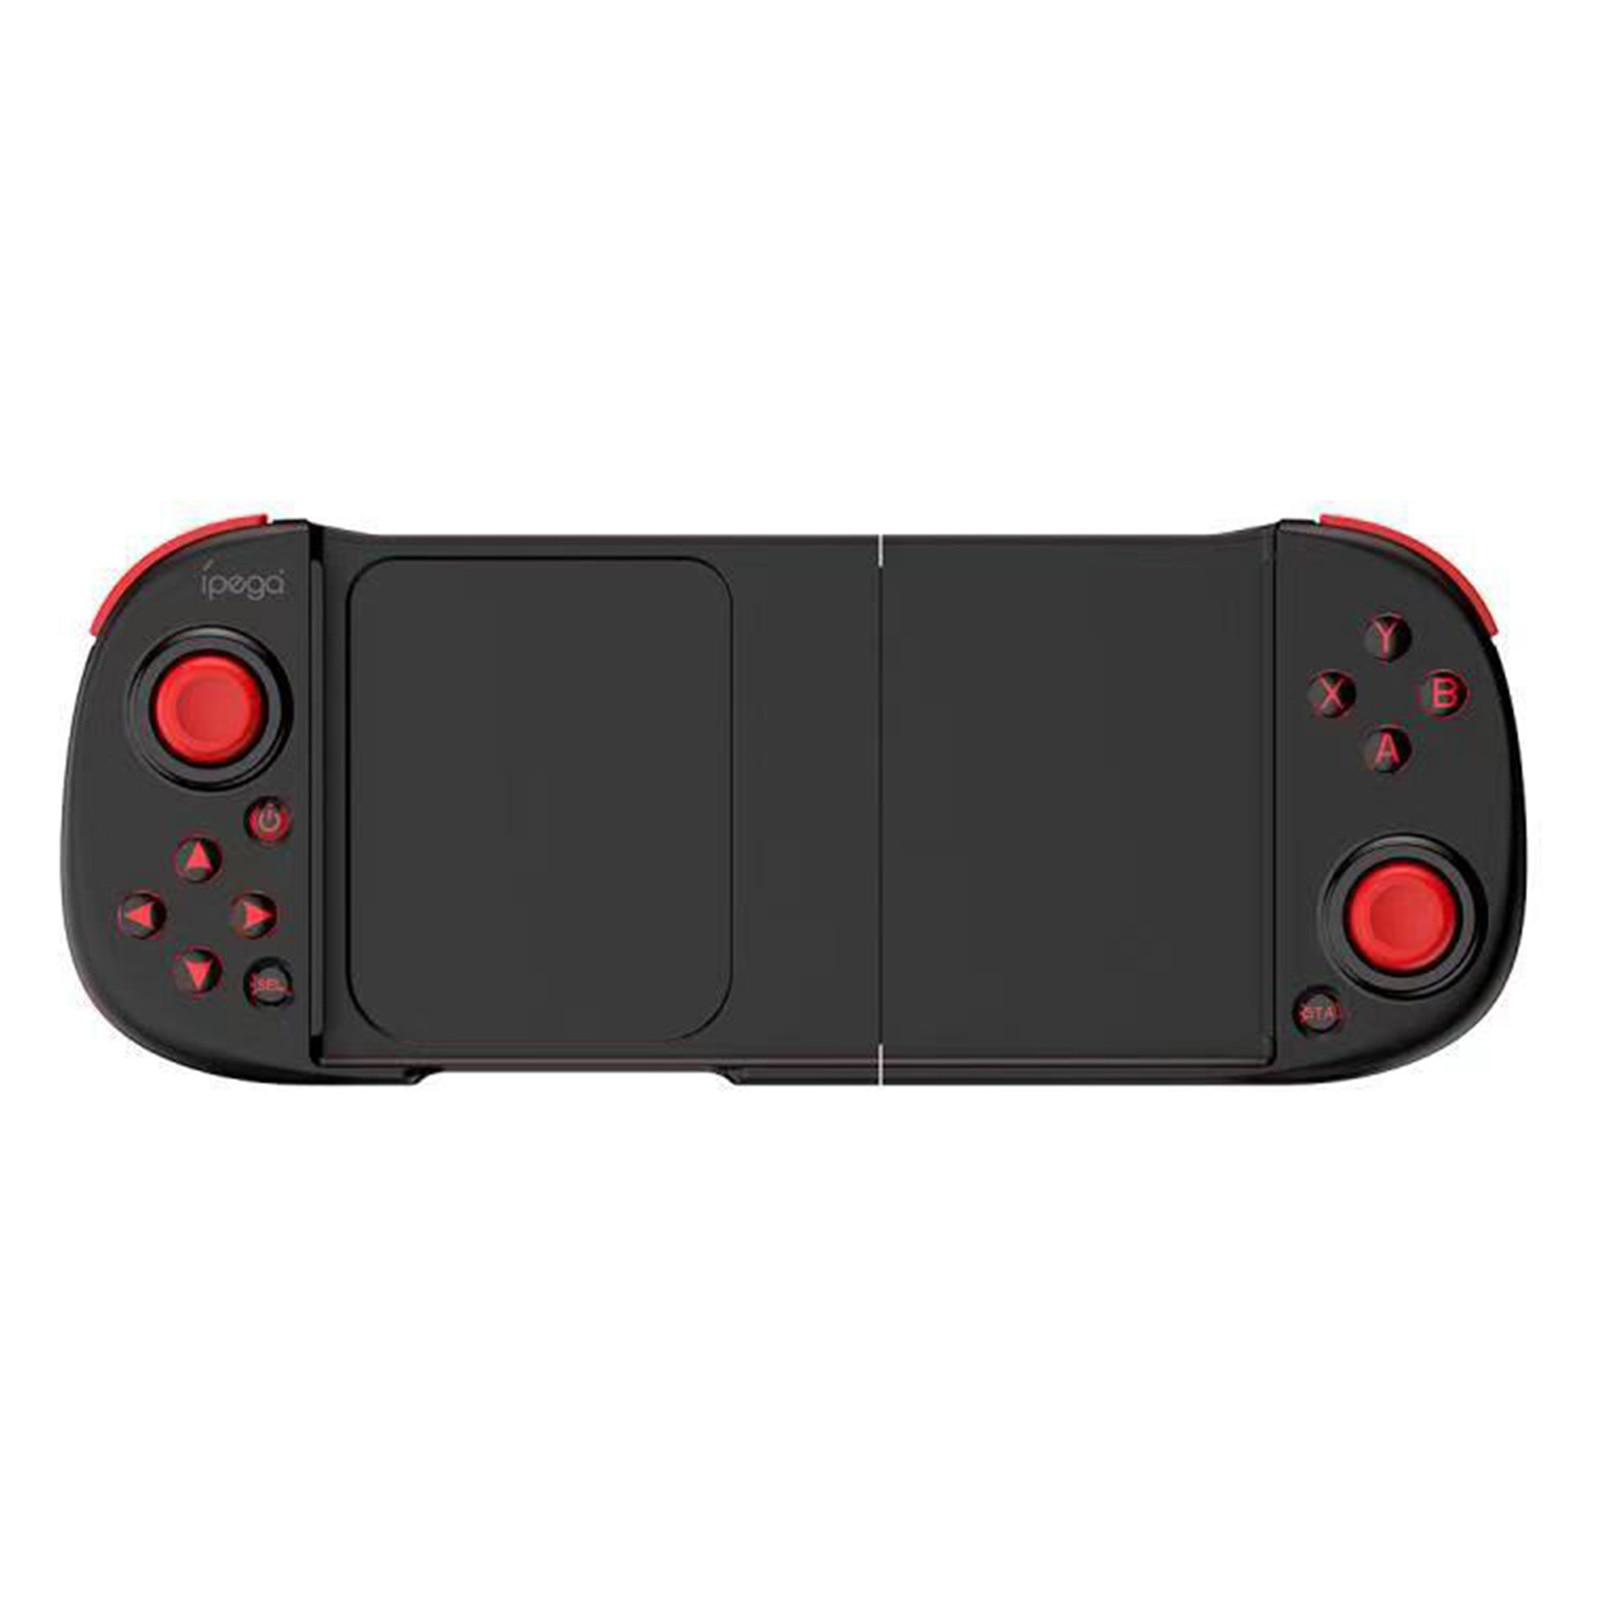 X6 Telescopic Bluetooth Game Controller Wireless Gamepad Trigger Joystick For PUBG Mobile IOS Android Phone PC TV Box Joypad enlarge